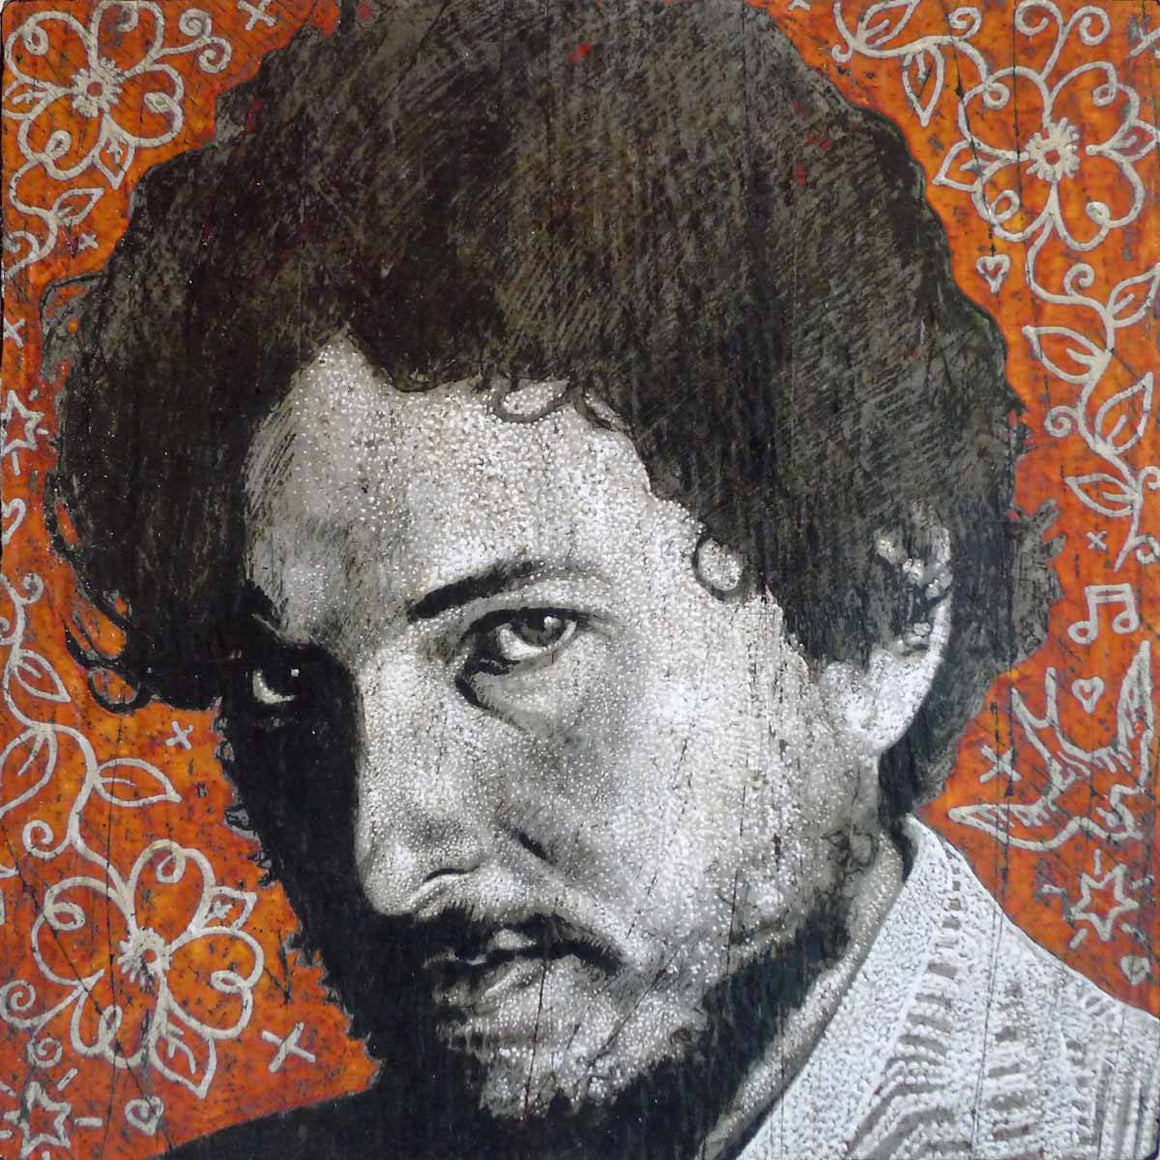 Dylan - New Morning - Jon Langford - Yard Dog Art